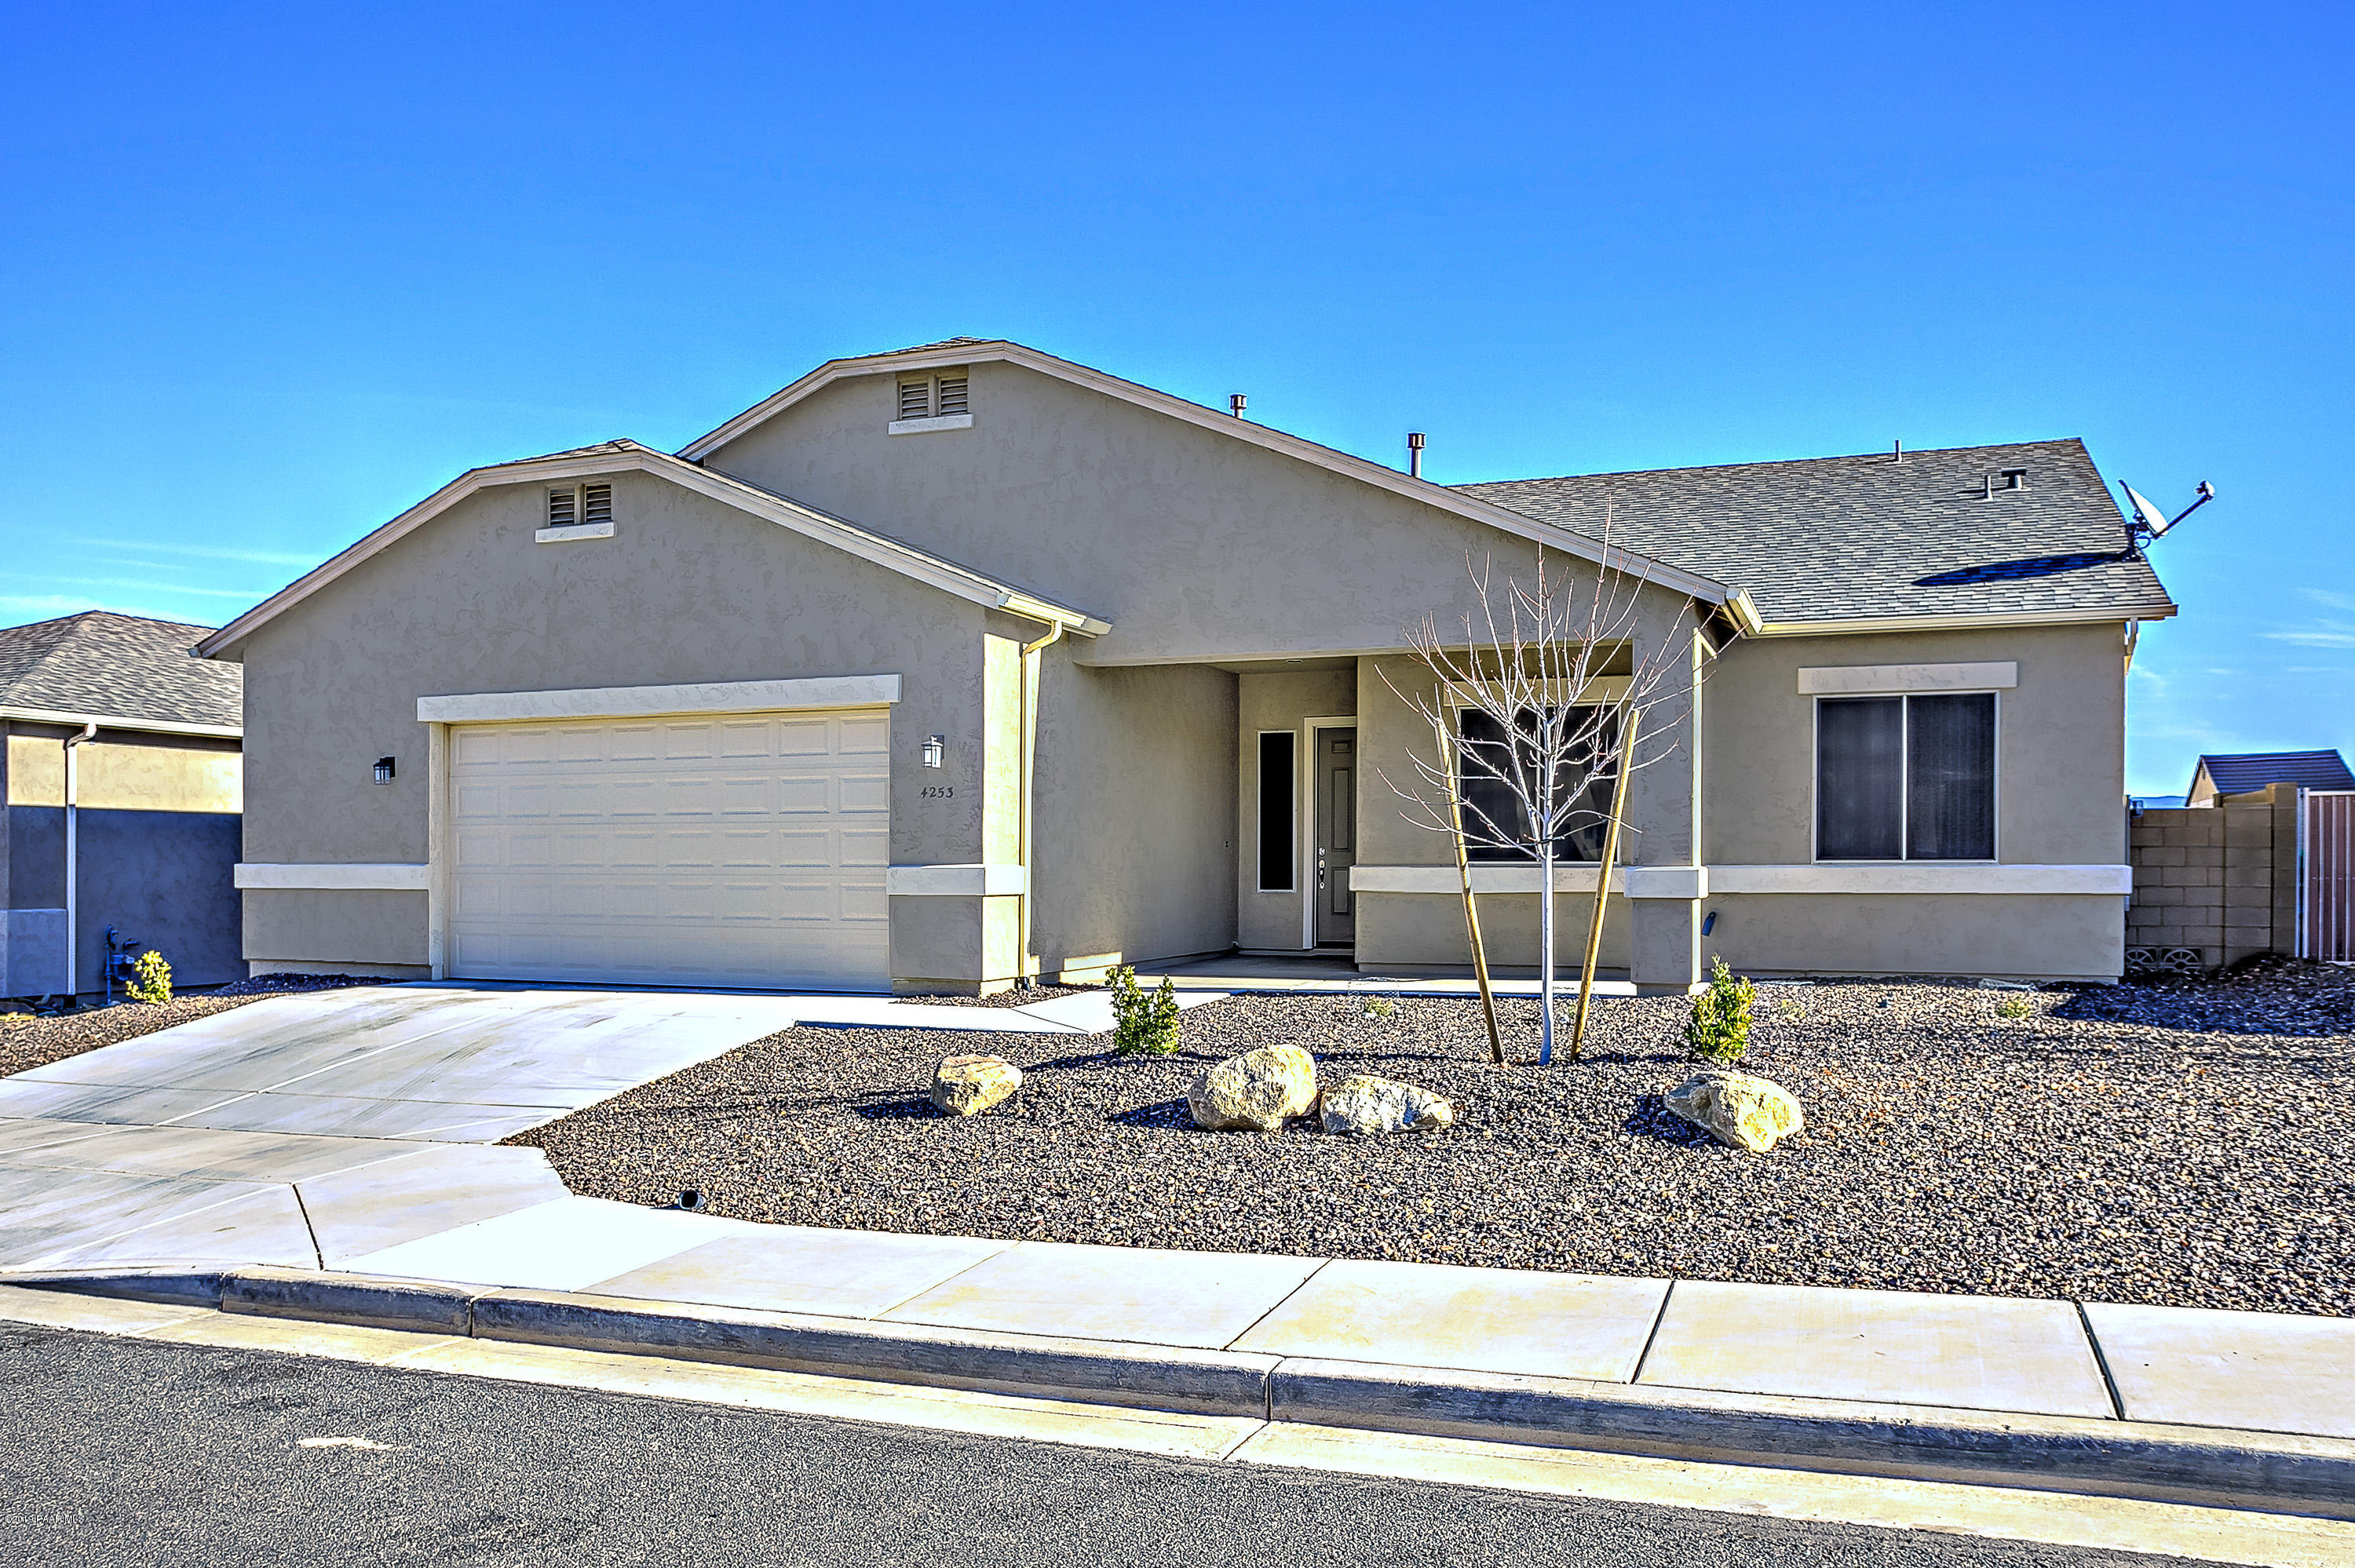 Photo of 4253 Pembroke, Prescott Valley, AZ 86314